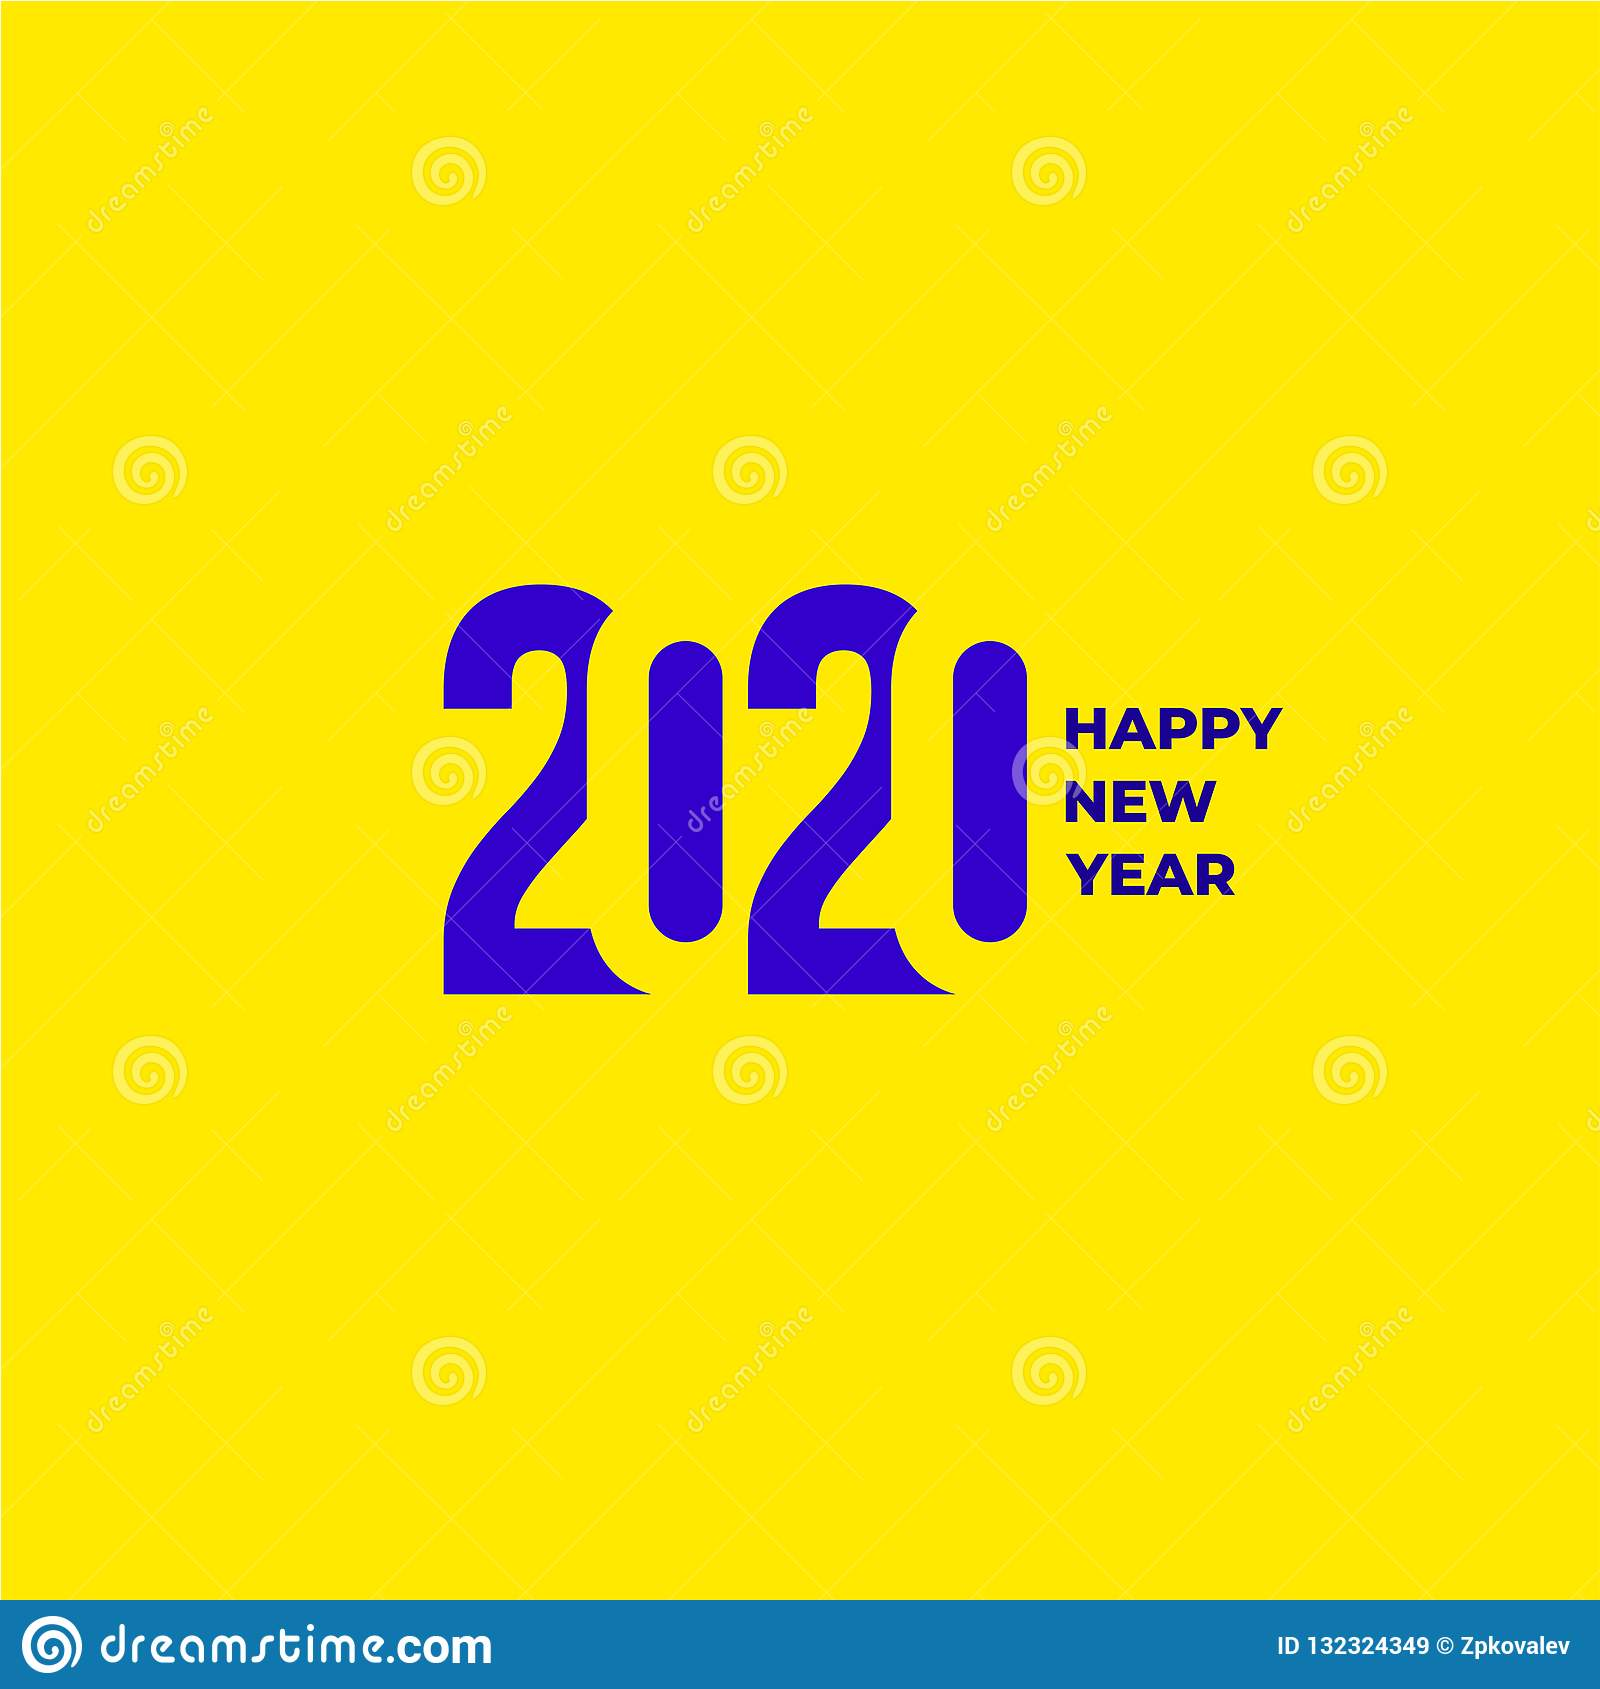 2020 text design pattern. Collection of Happy New Year and happy holidays. Vector illustration. Isolated on yellow background